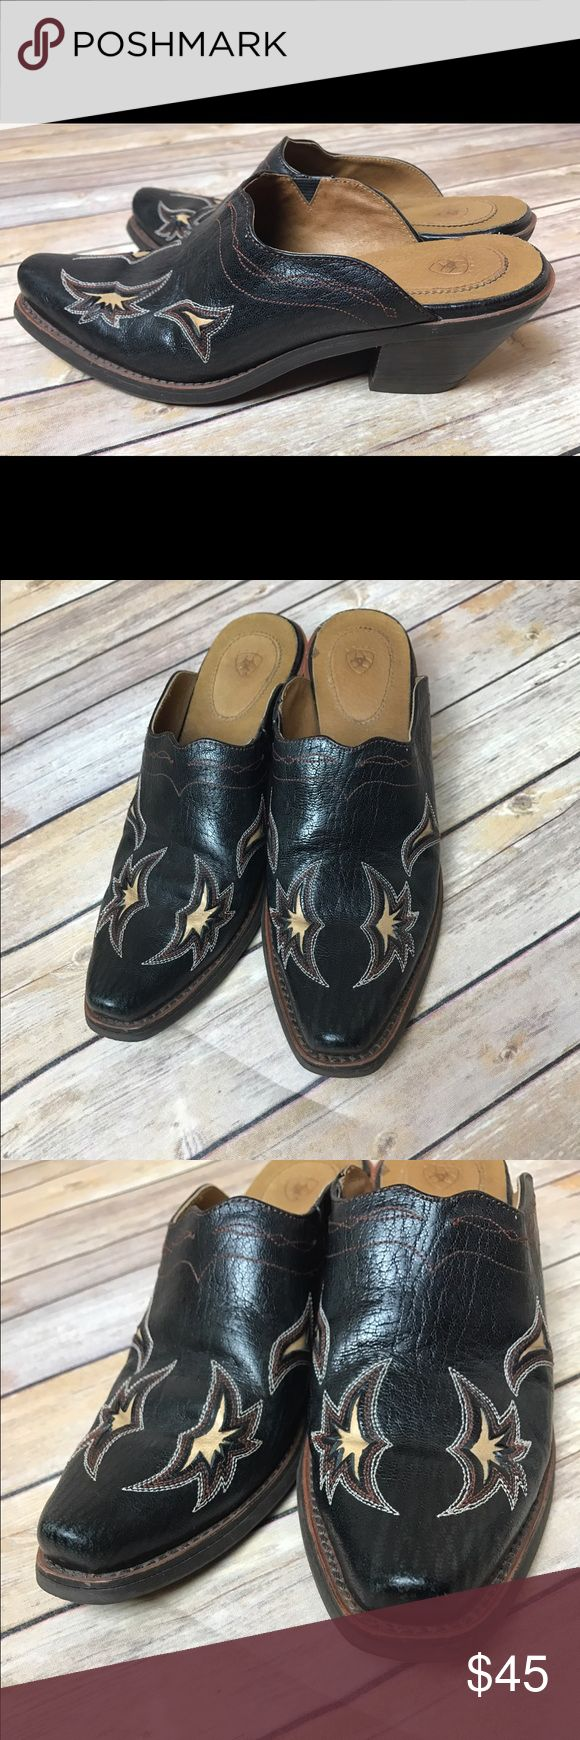 Ariat Leather Embroidered Western Mules Clogs Artiat Western Leather Pointed Toe Embroidered Slip On Mules  Size 6  Minor scuff on inner sole. Otherwise excellent condition. Please see pictures  MSRP $149 Smoke free home Ariat Shoes Mules & Clogs